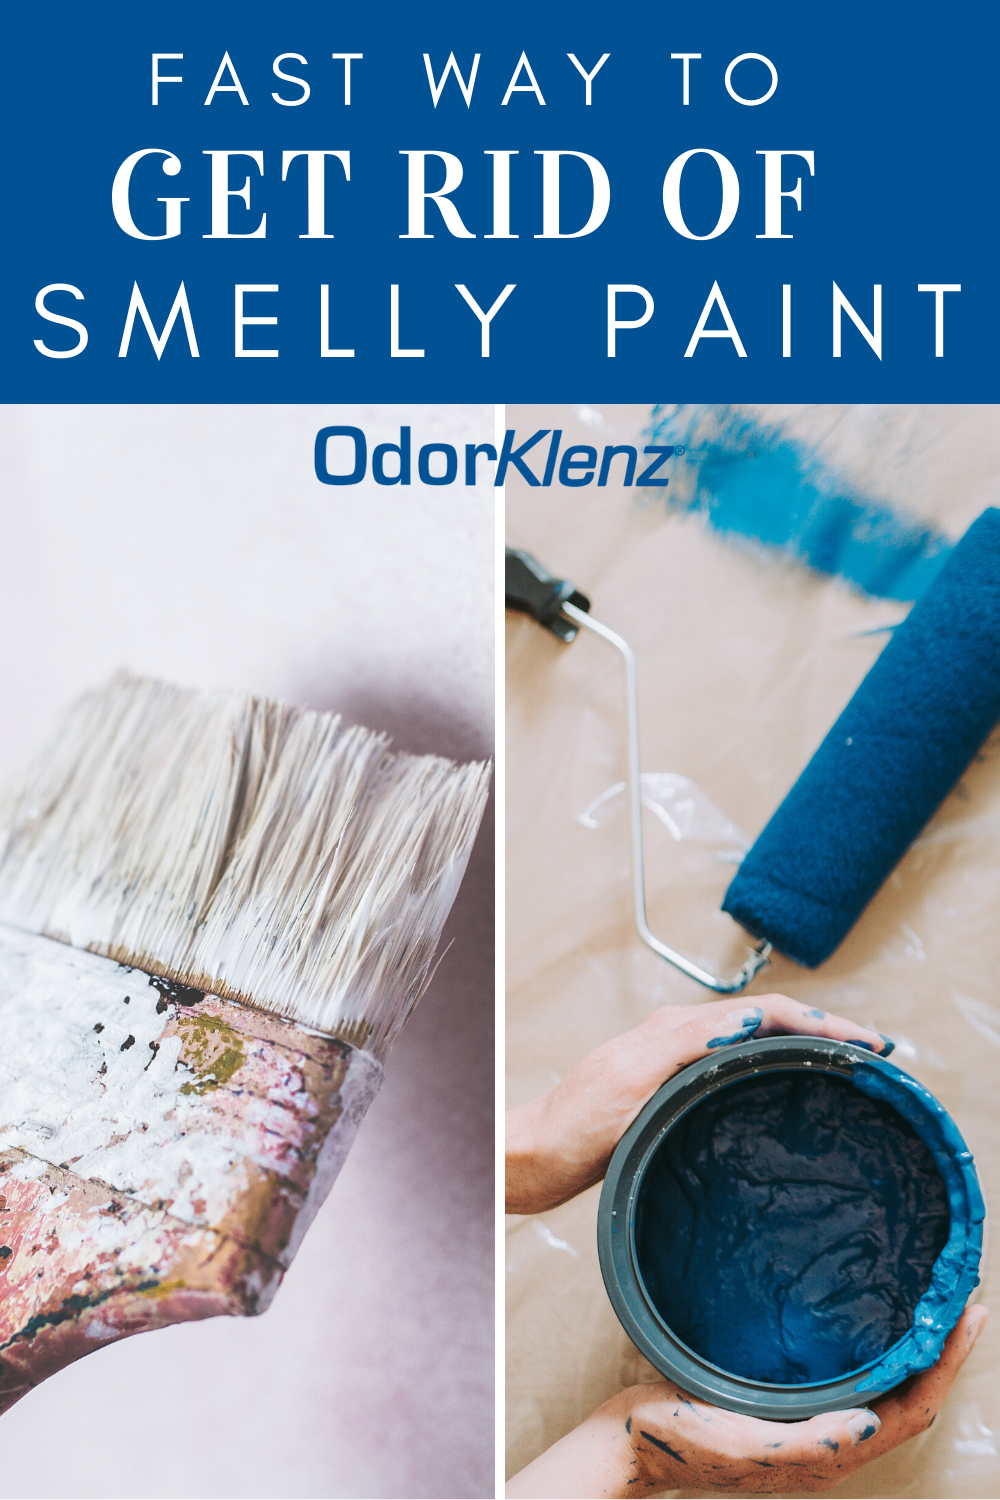 Paint Smell Can Linger For A Long Time In A House And Can Be Very Dangerous To One S Health In This Article Learn How To Get Rid Of S In 2020 With